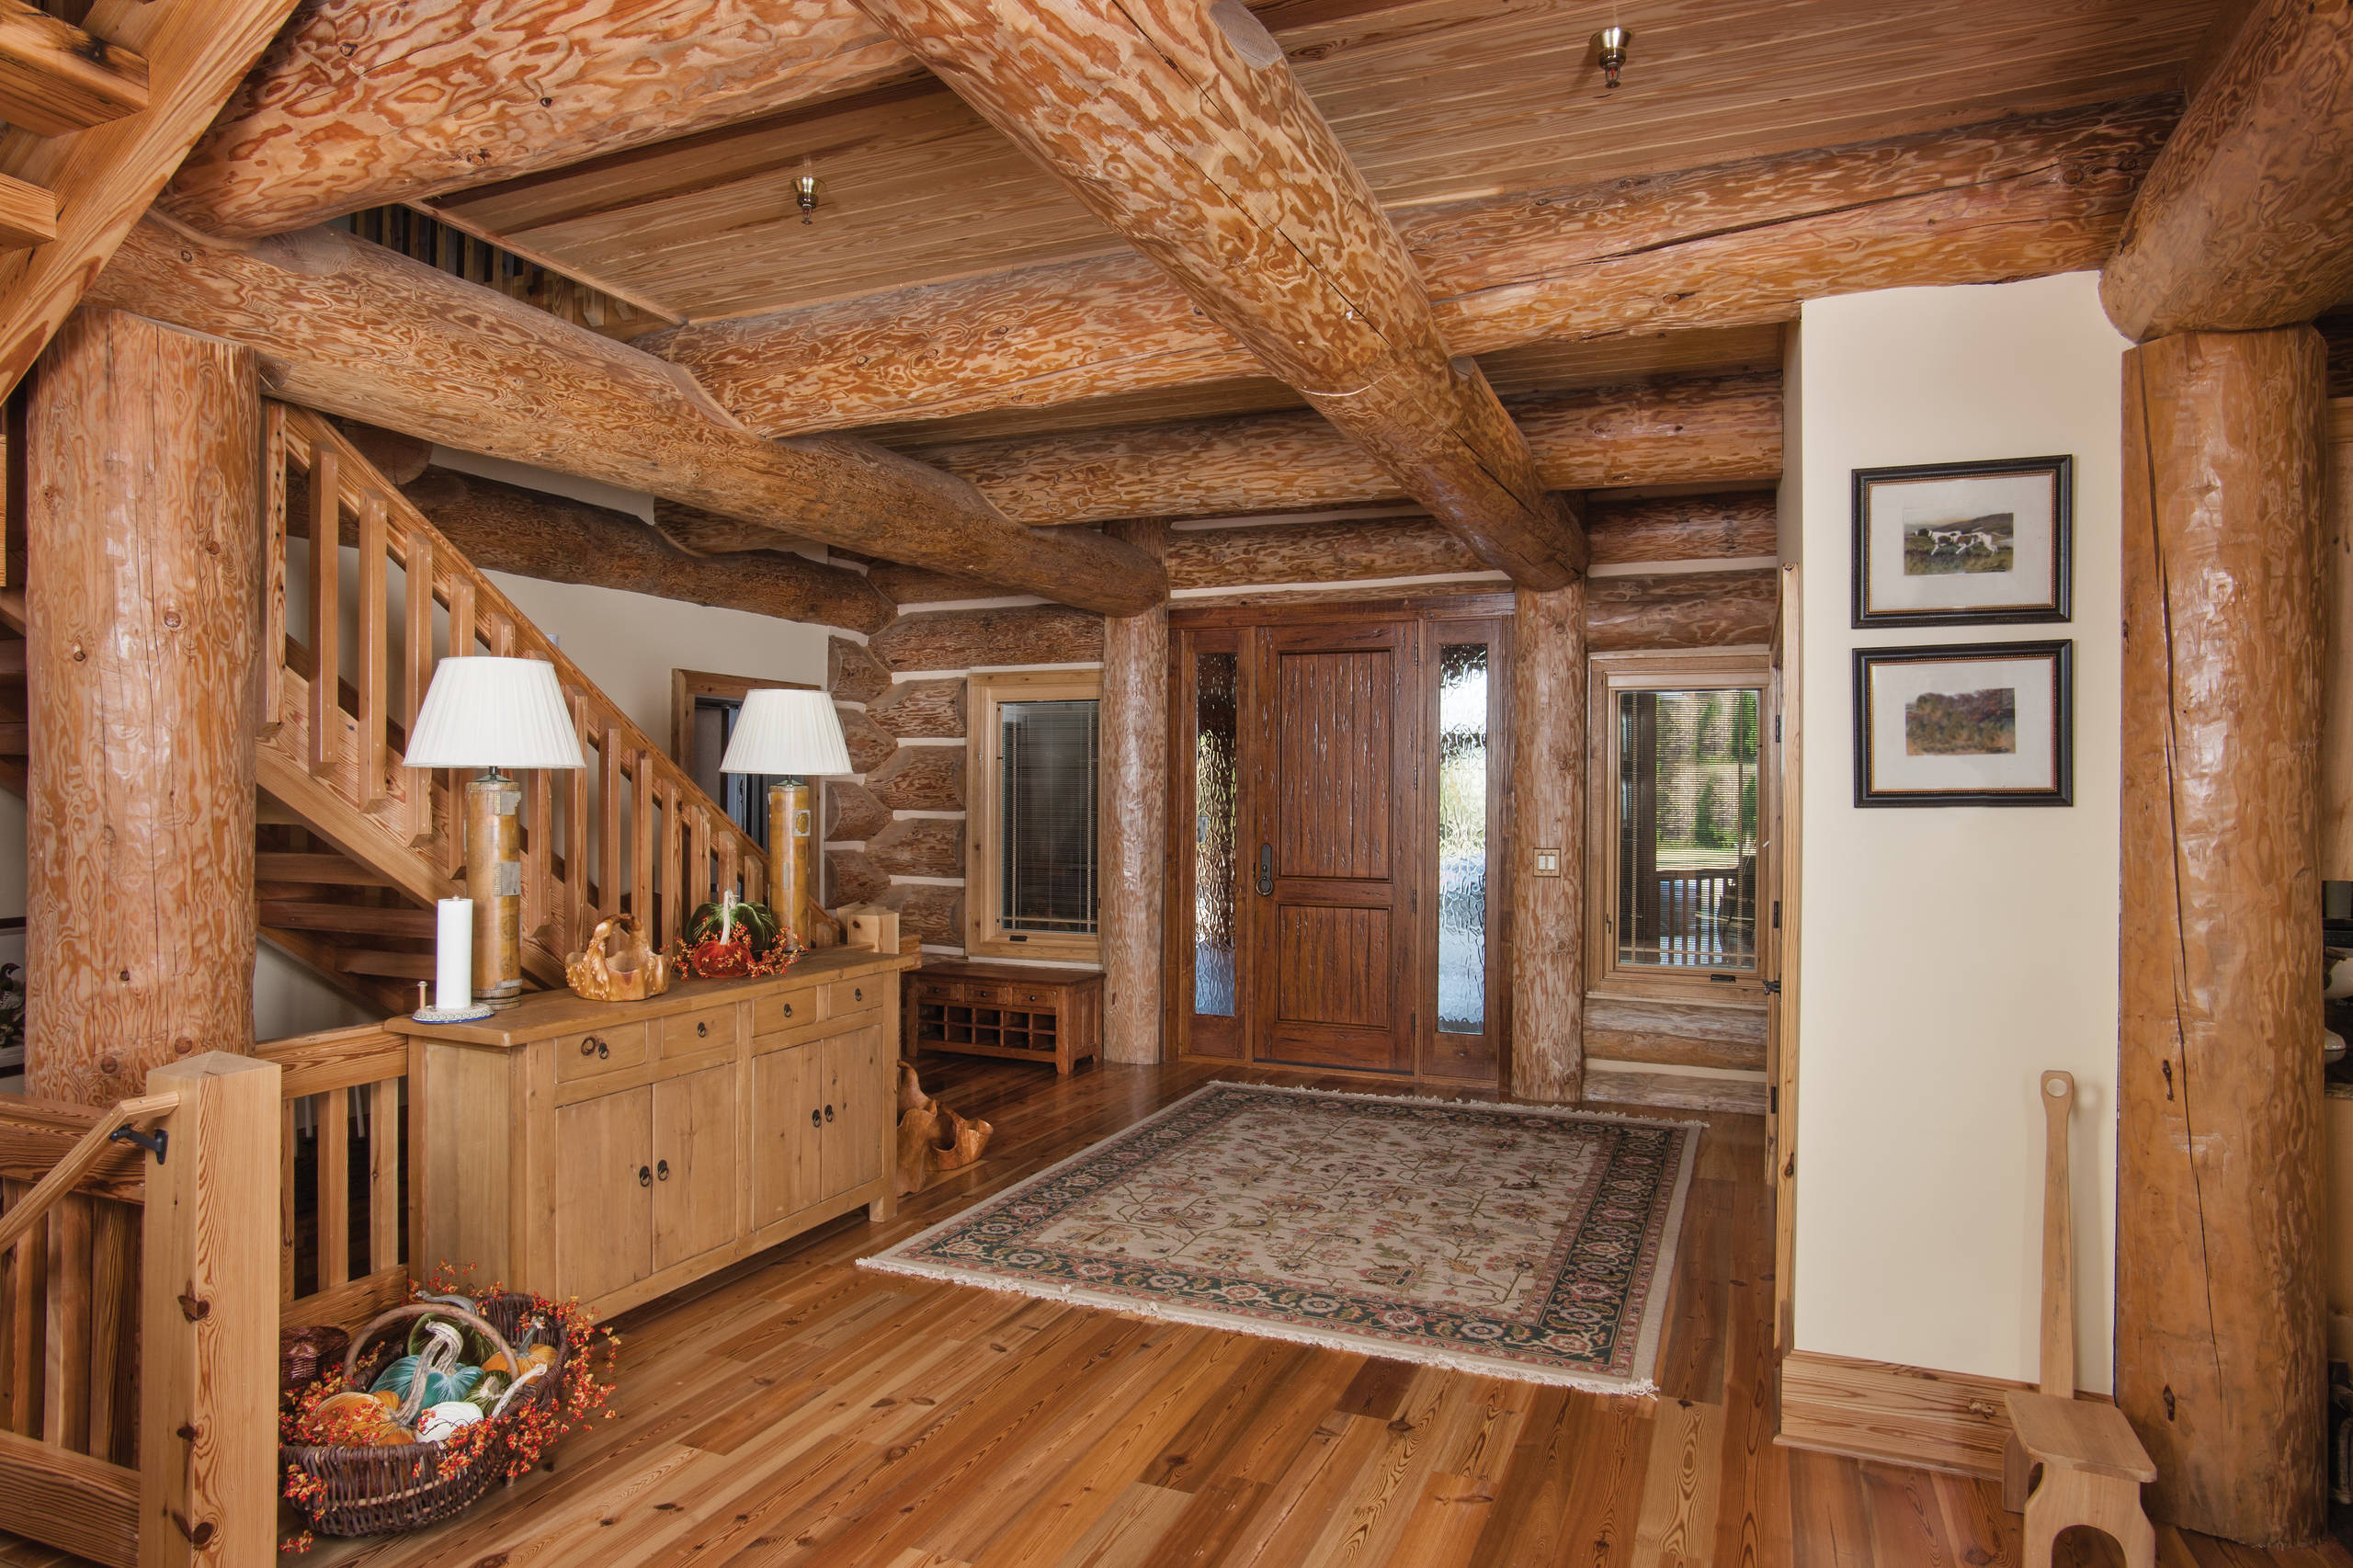 Rustic Entry Foyer : Welcoming rustic entry hall designs you re going to adore